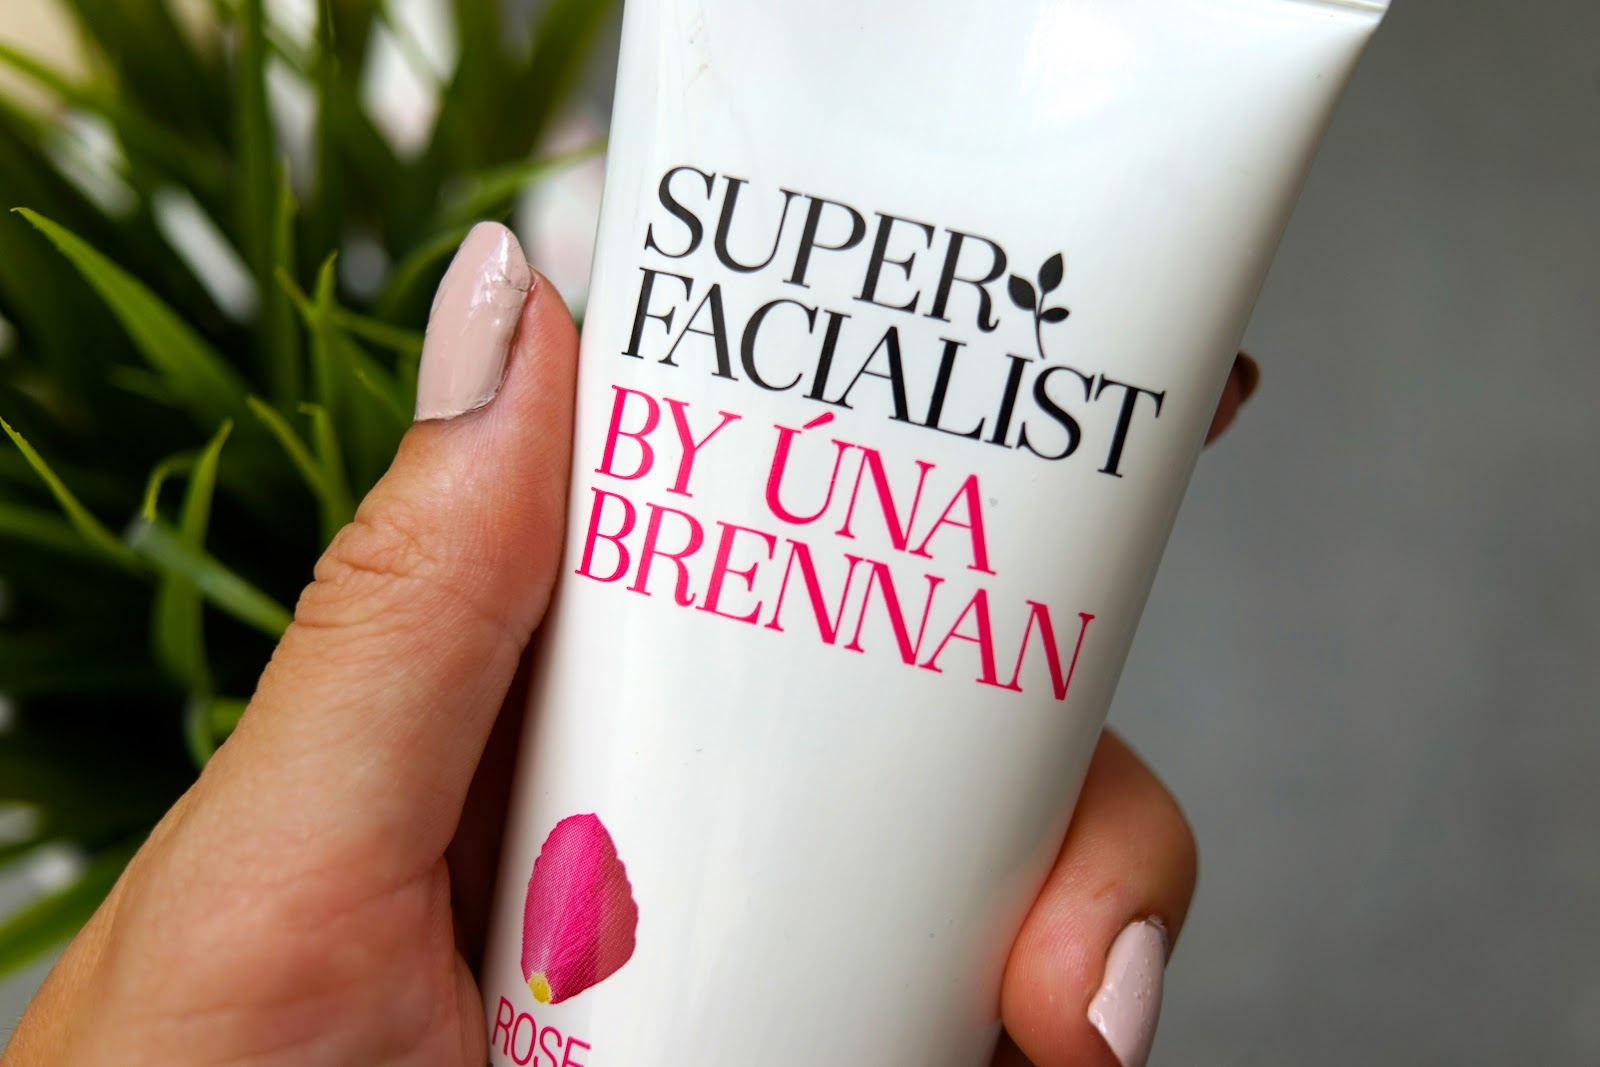 Super Facialist By Una Brennan